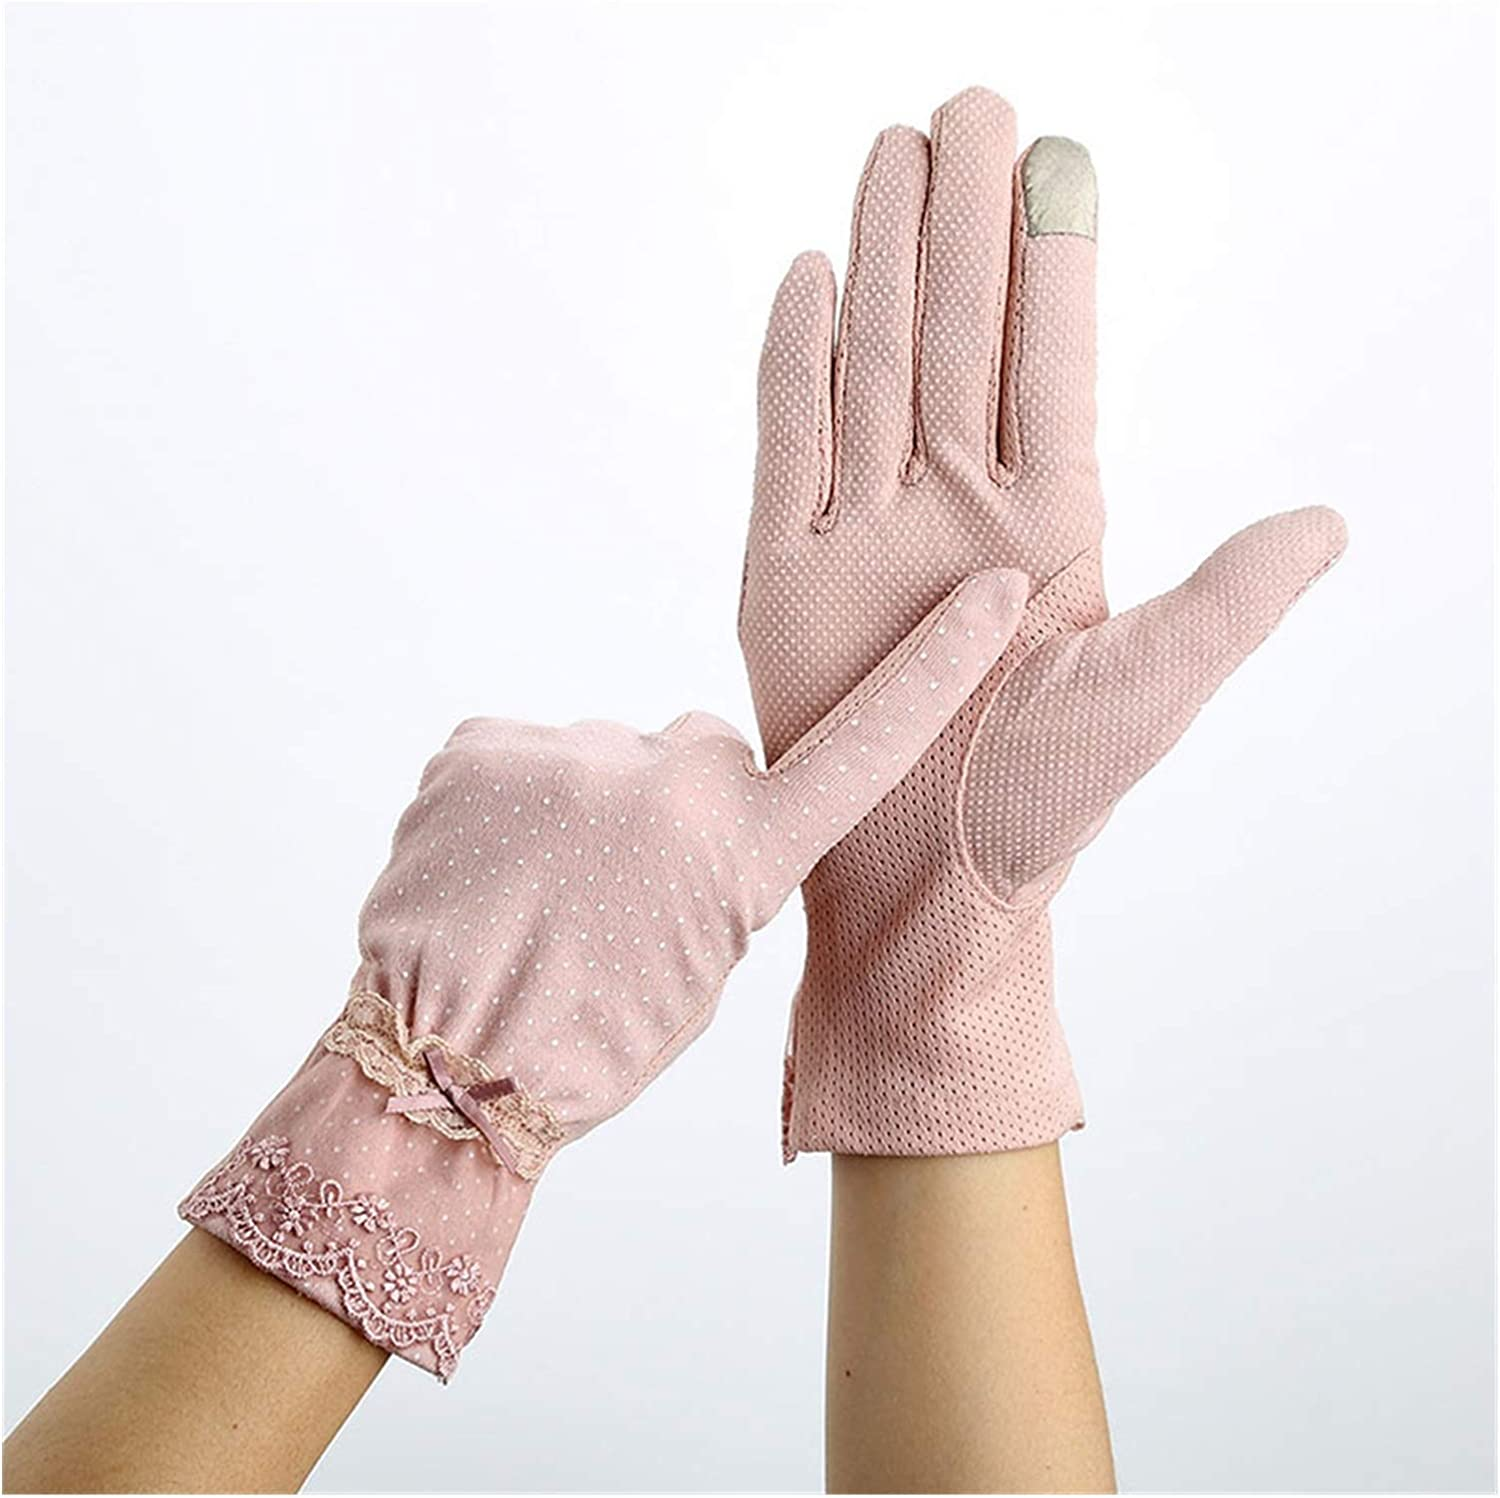 DMYONGLIAN Lace Gloves Women Sunscreen Gloves Summer Lace Stretch Touch Screen Mitten Anti-UV Wrist Short Slip Resistant Driving Glove Accessories (Color : Pink, Gloves Size : One Size)